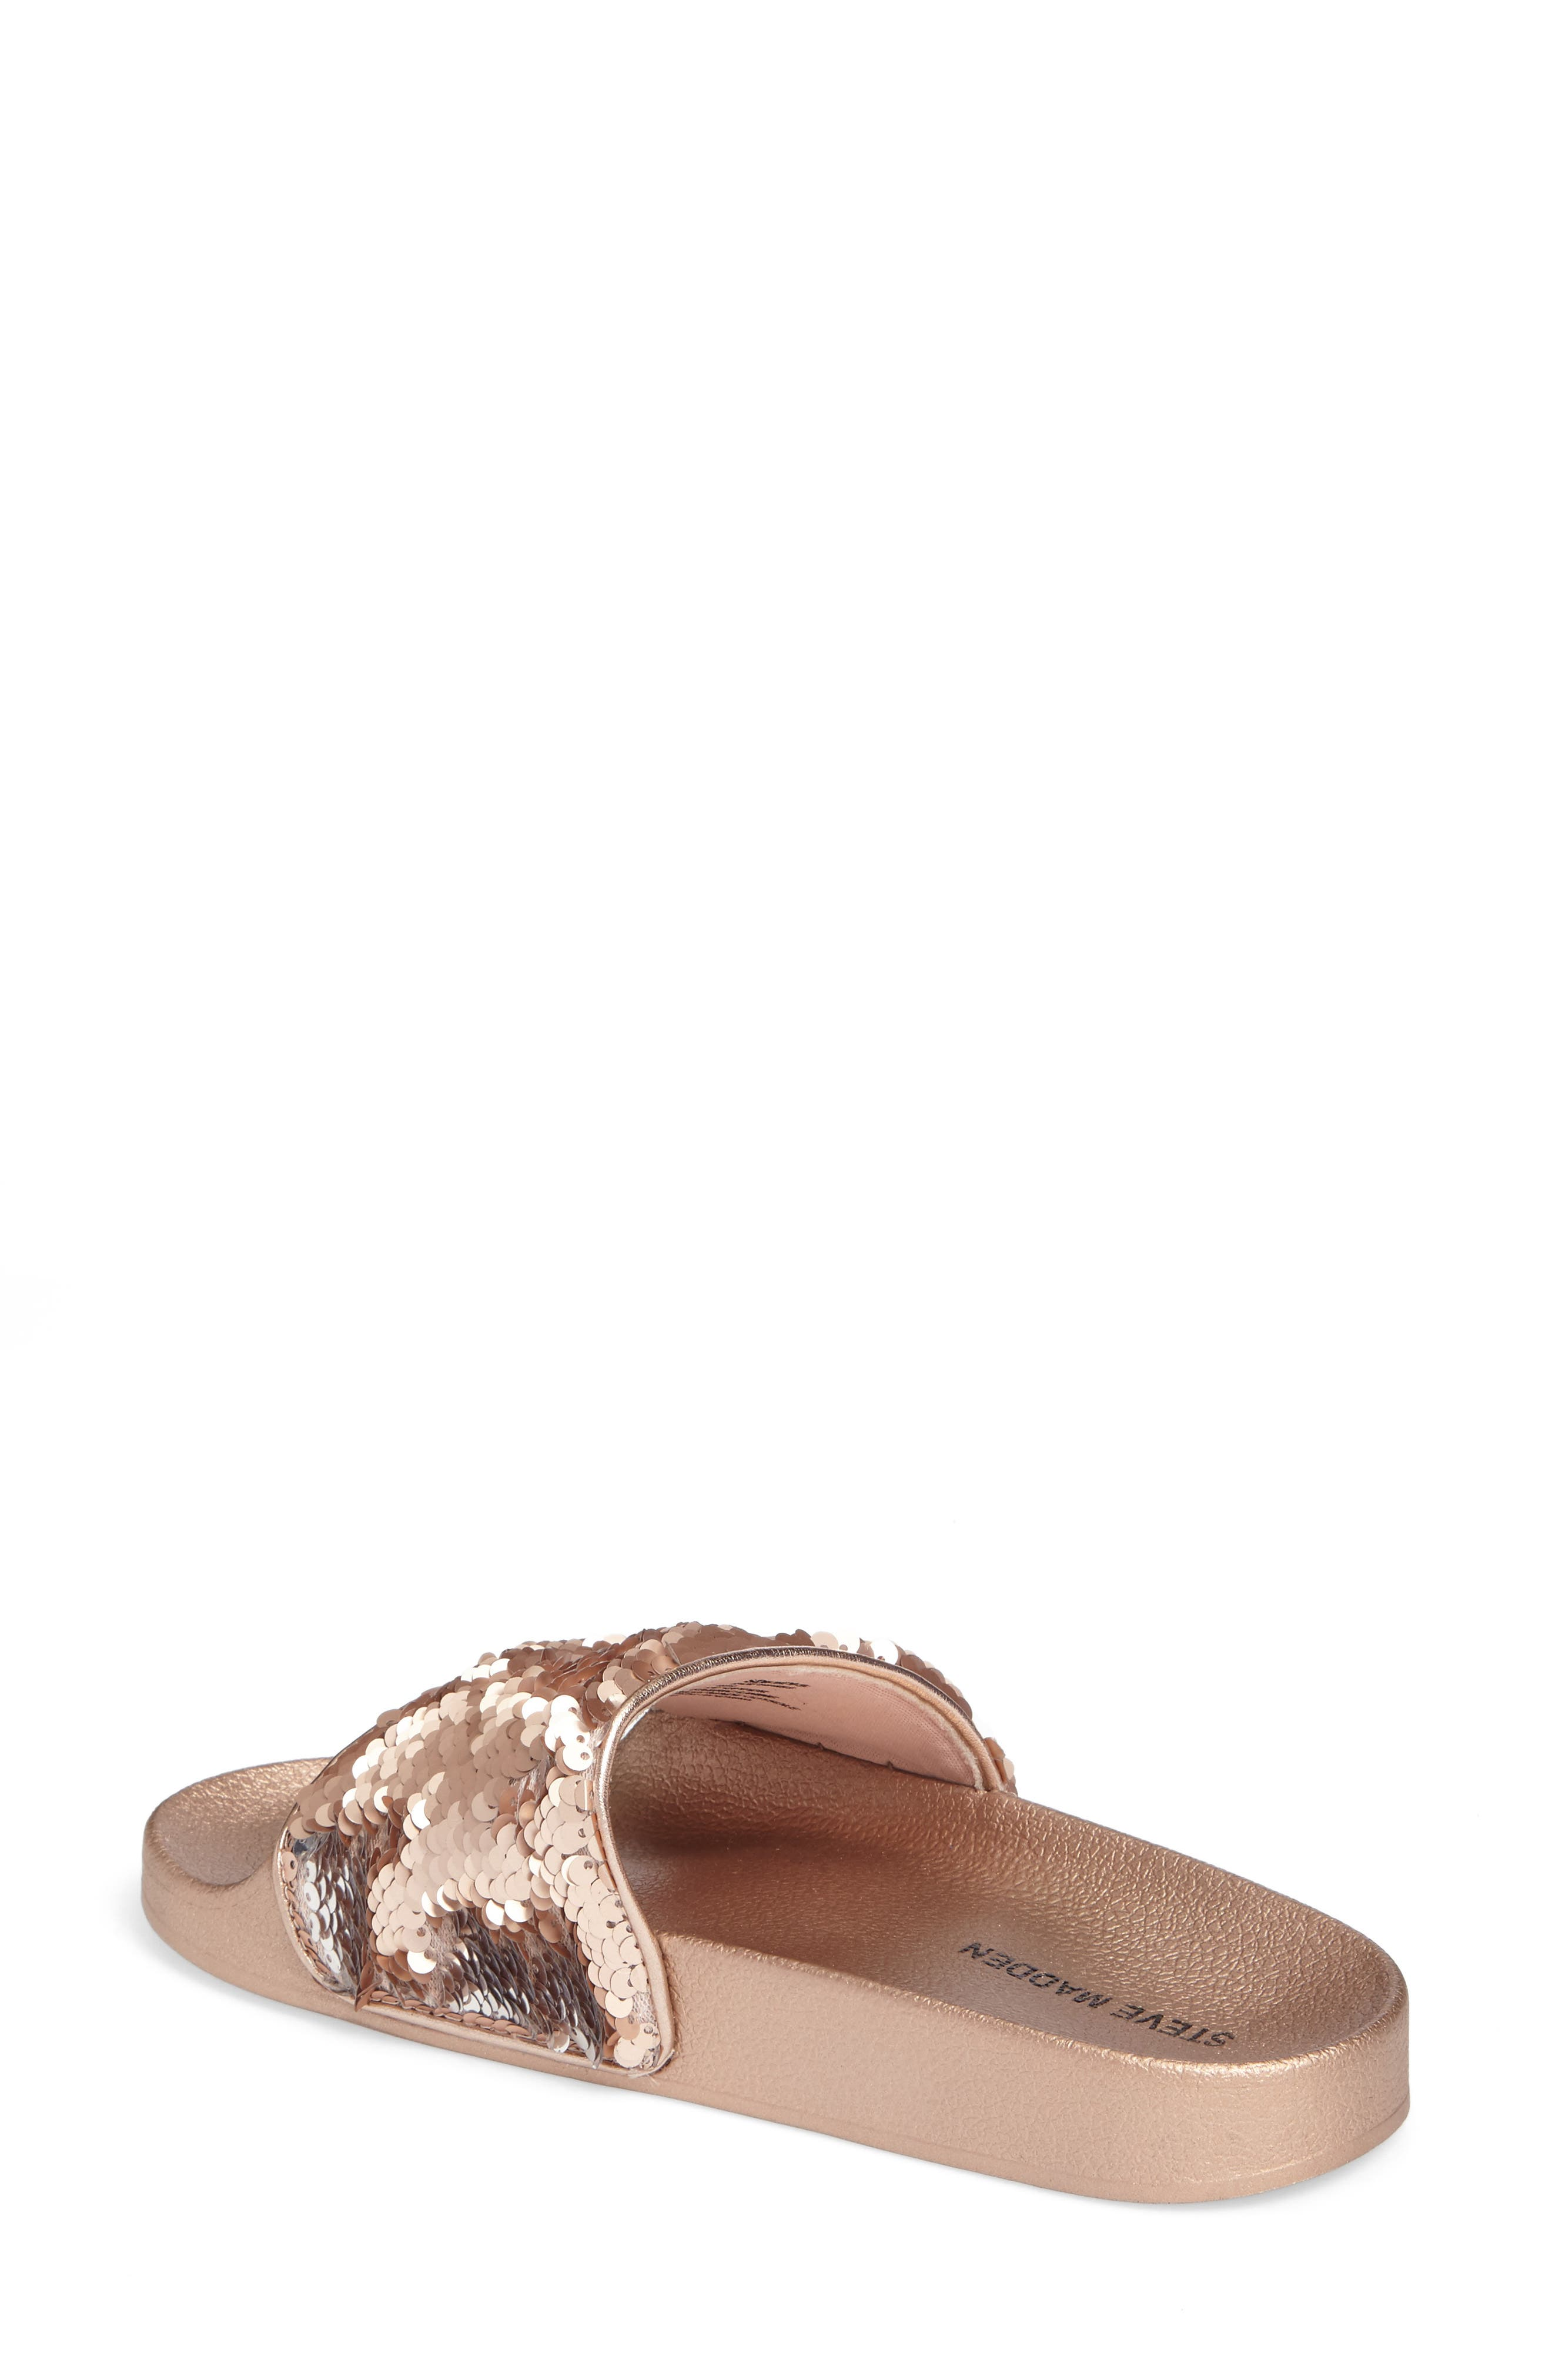 Alternate Image 2  - Steve Madden Softey Sequin Slide Sandal (Women)